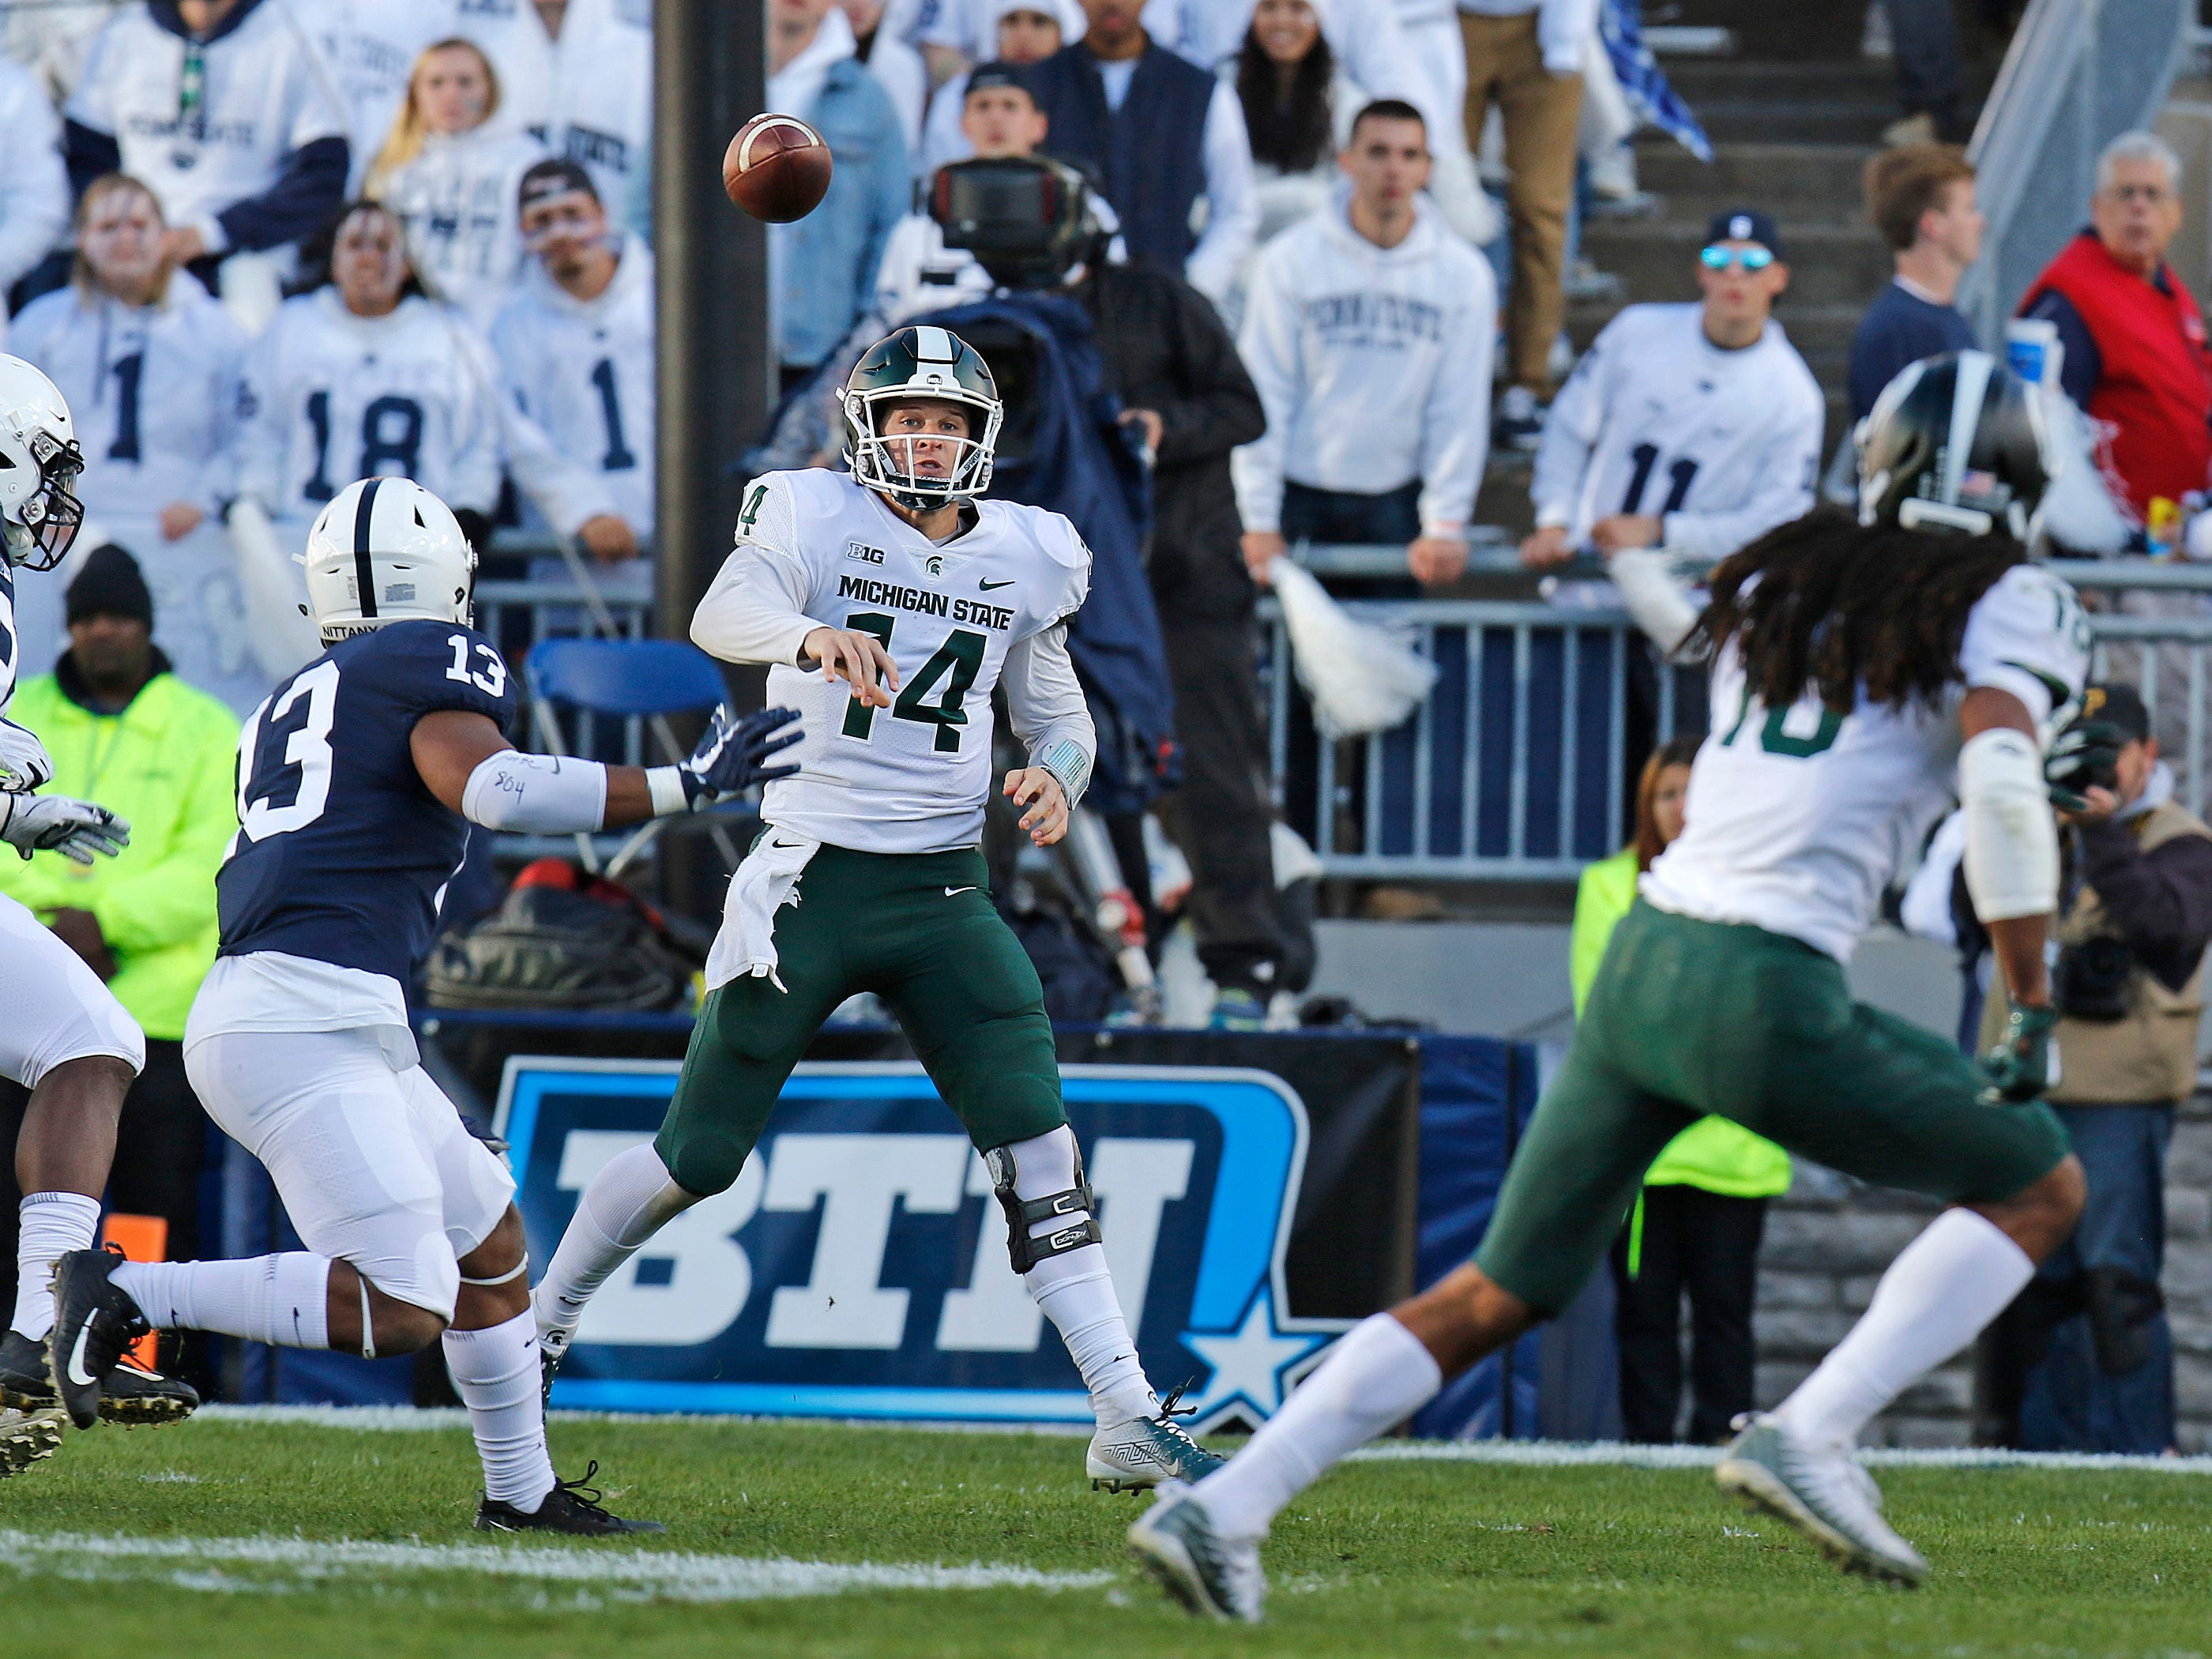 Brian Lewerke #14 of the Michigan State Spartans passes against the Penn State Nittany Lions on October 13, 2018 at Beaver Stadium in State College, Pennsylvania.